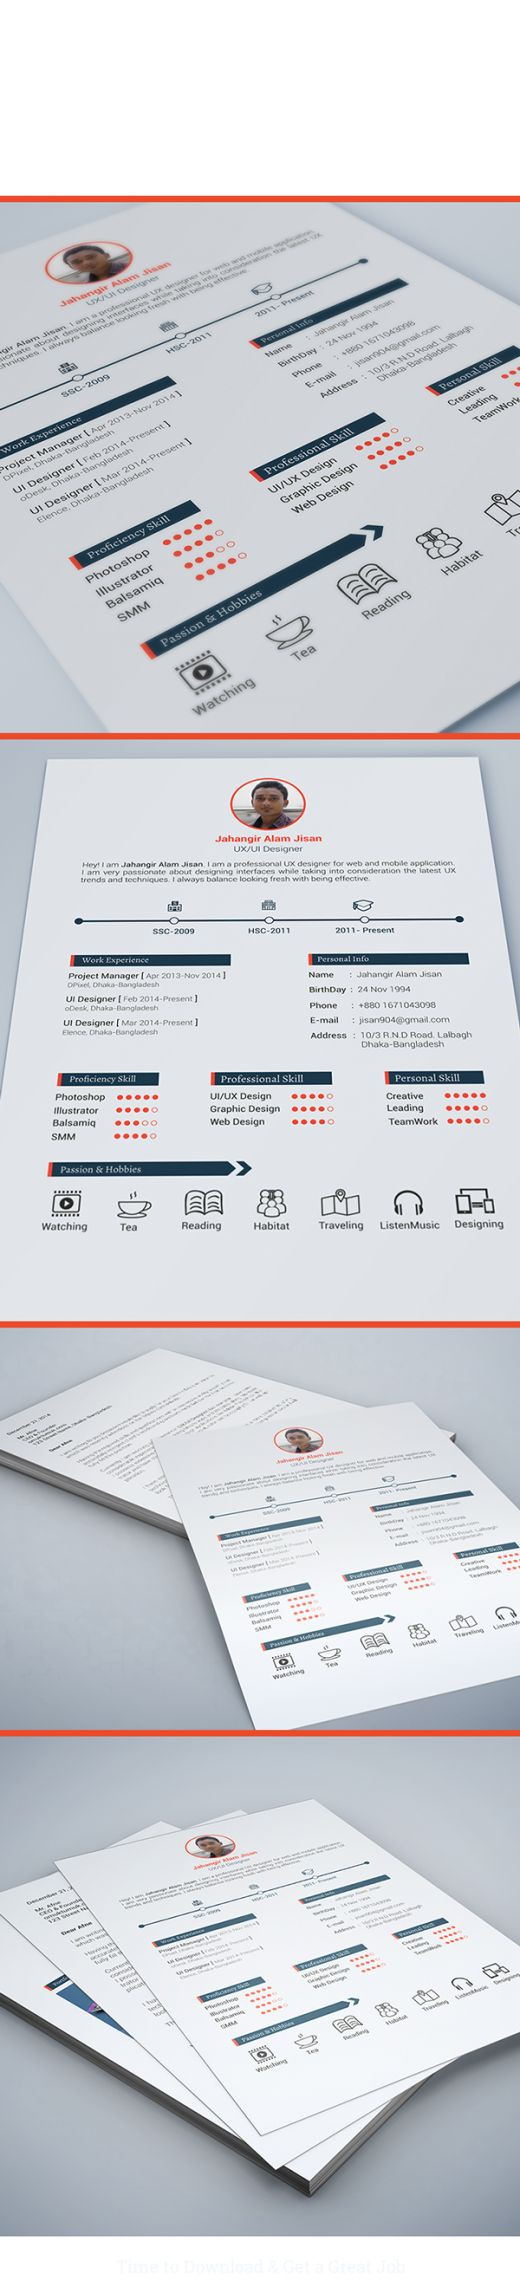 33 best CV images on Pinterest | Cv template, Resume and Resume ...